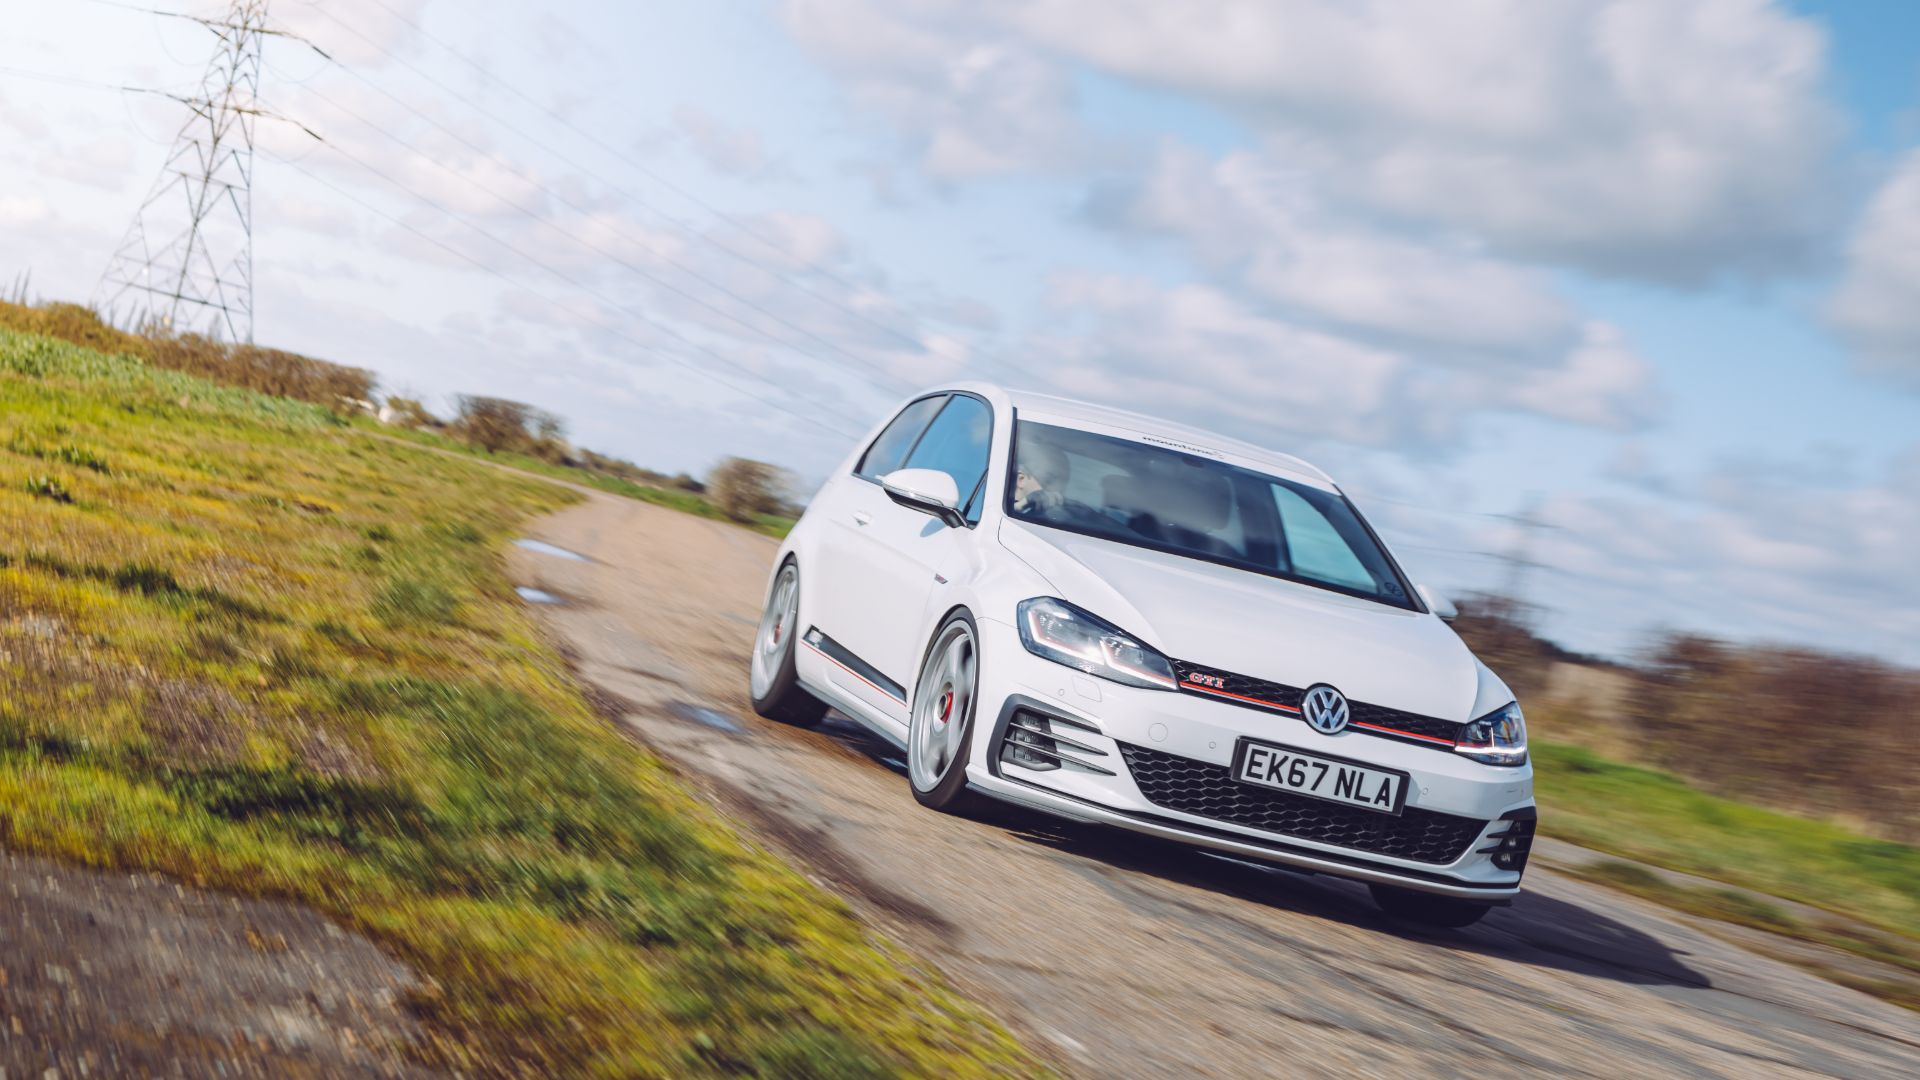 Volkswagen Golf Gti Stage 2 By Mountune 2020 Review